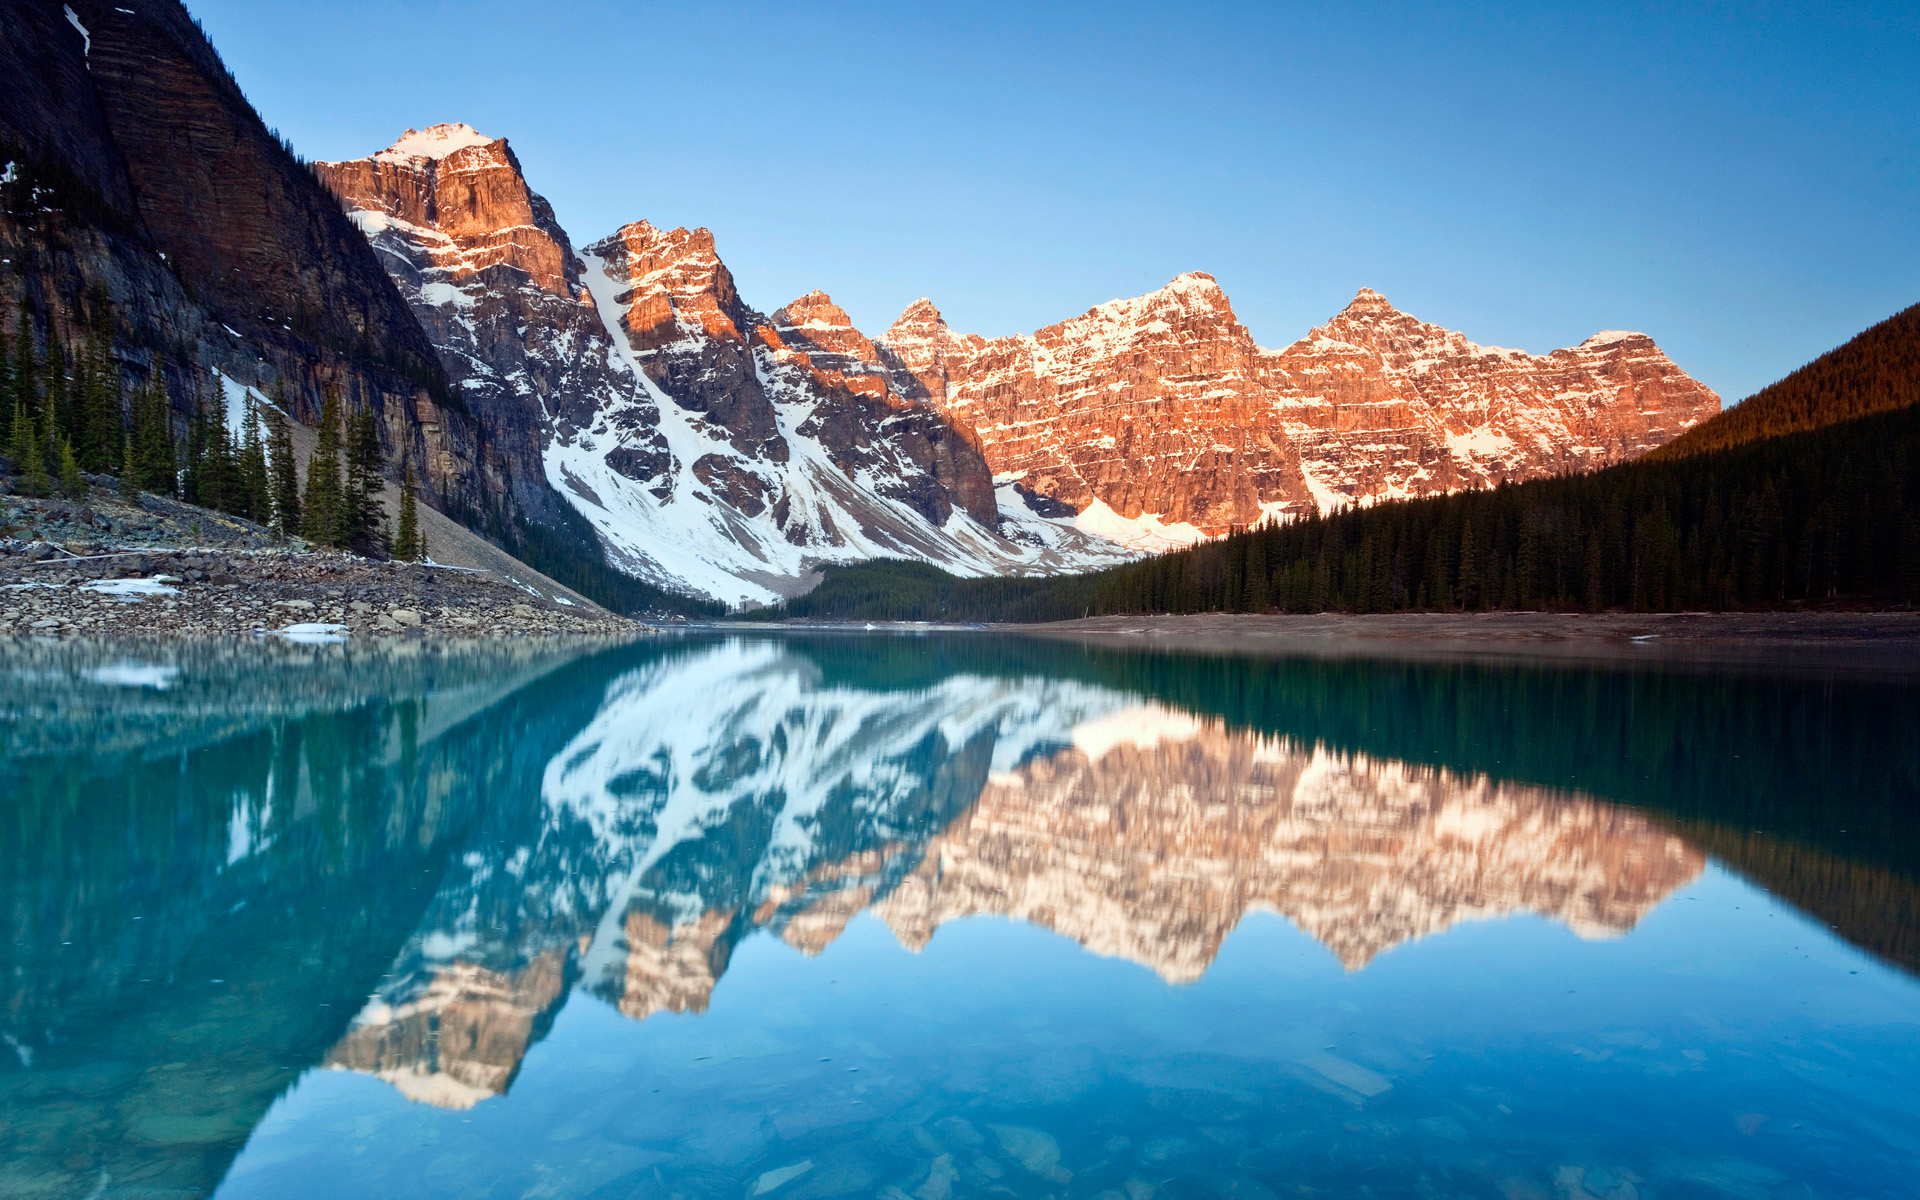 Moraine Lake Reflections Wallpapers HD Wallpapers 1920x1200